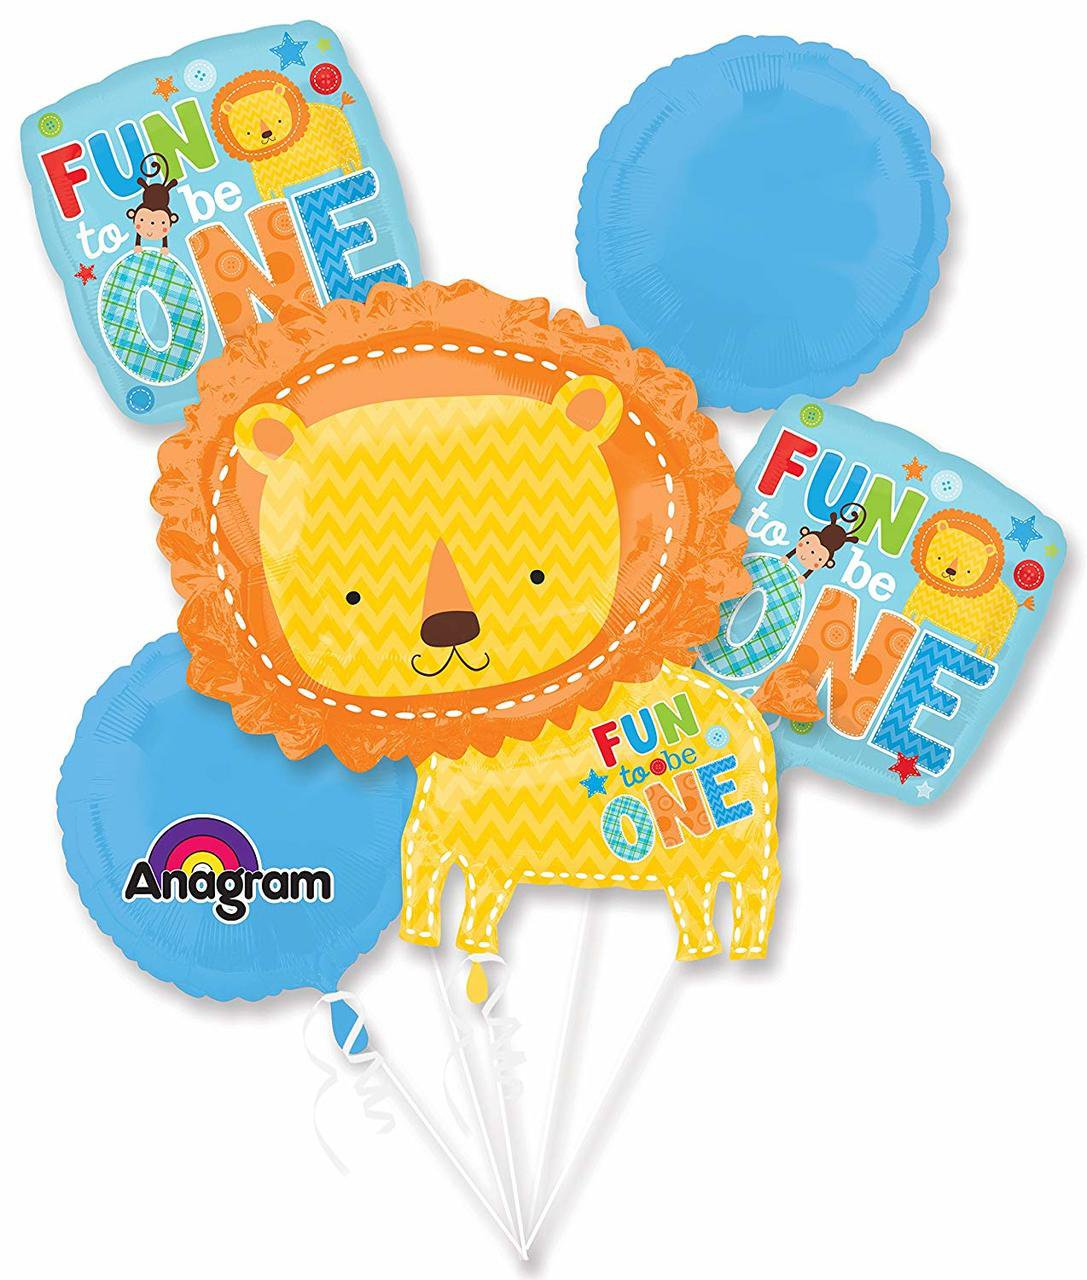 Fun To Be One Balloon Bouquet